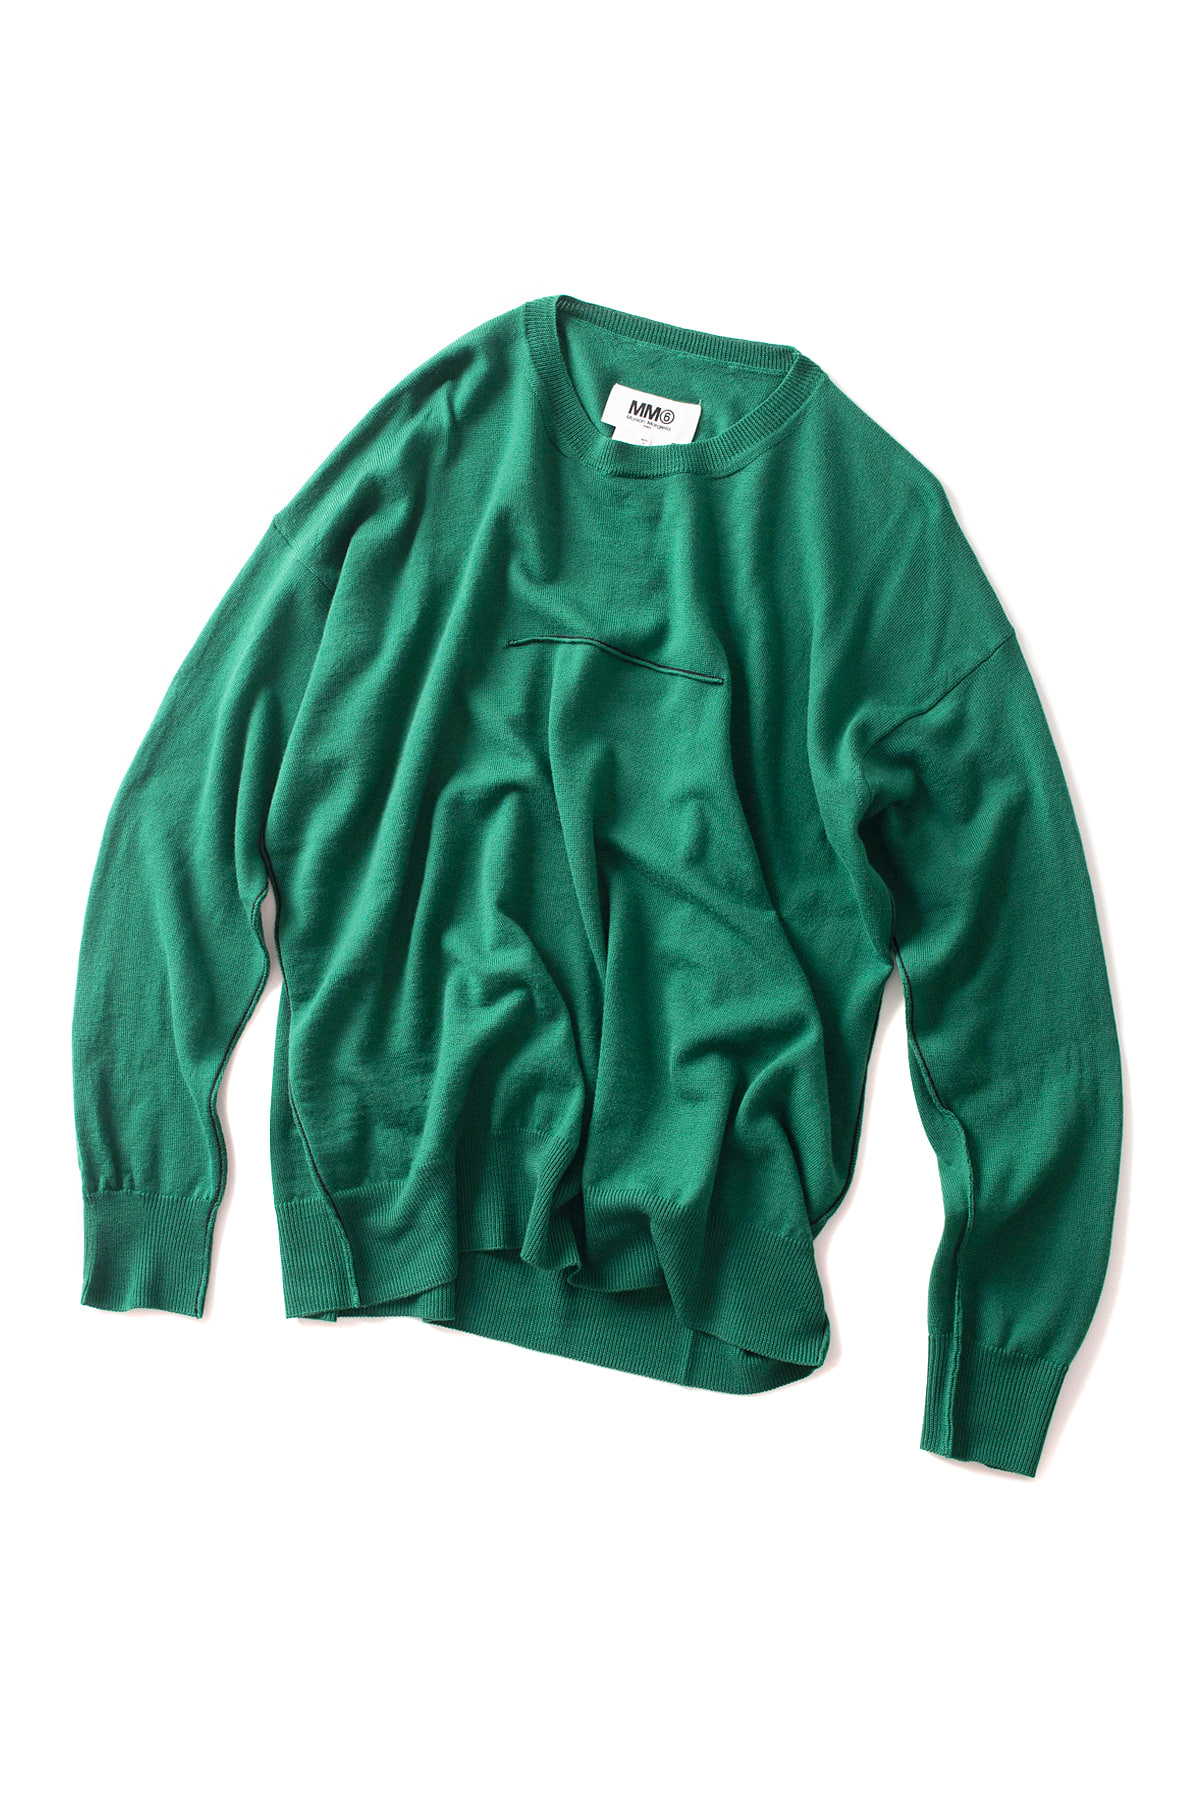 MM6 Maison Margiela : Line Pullover (Green)